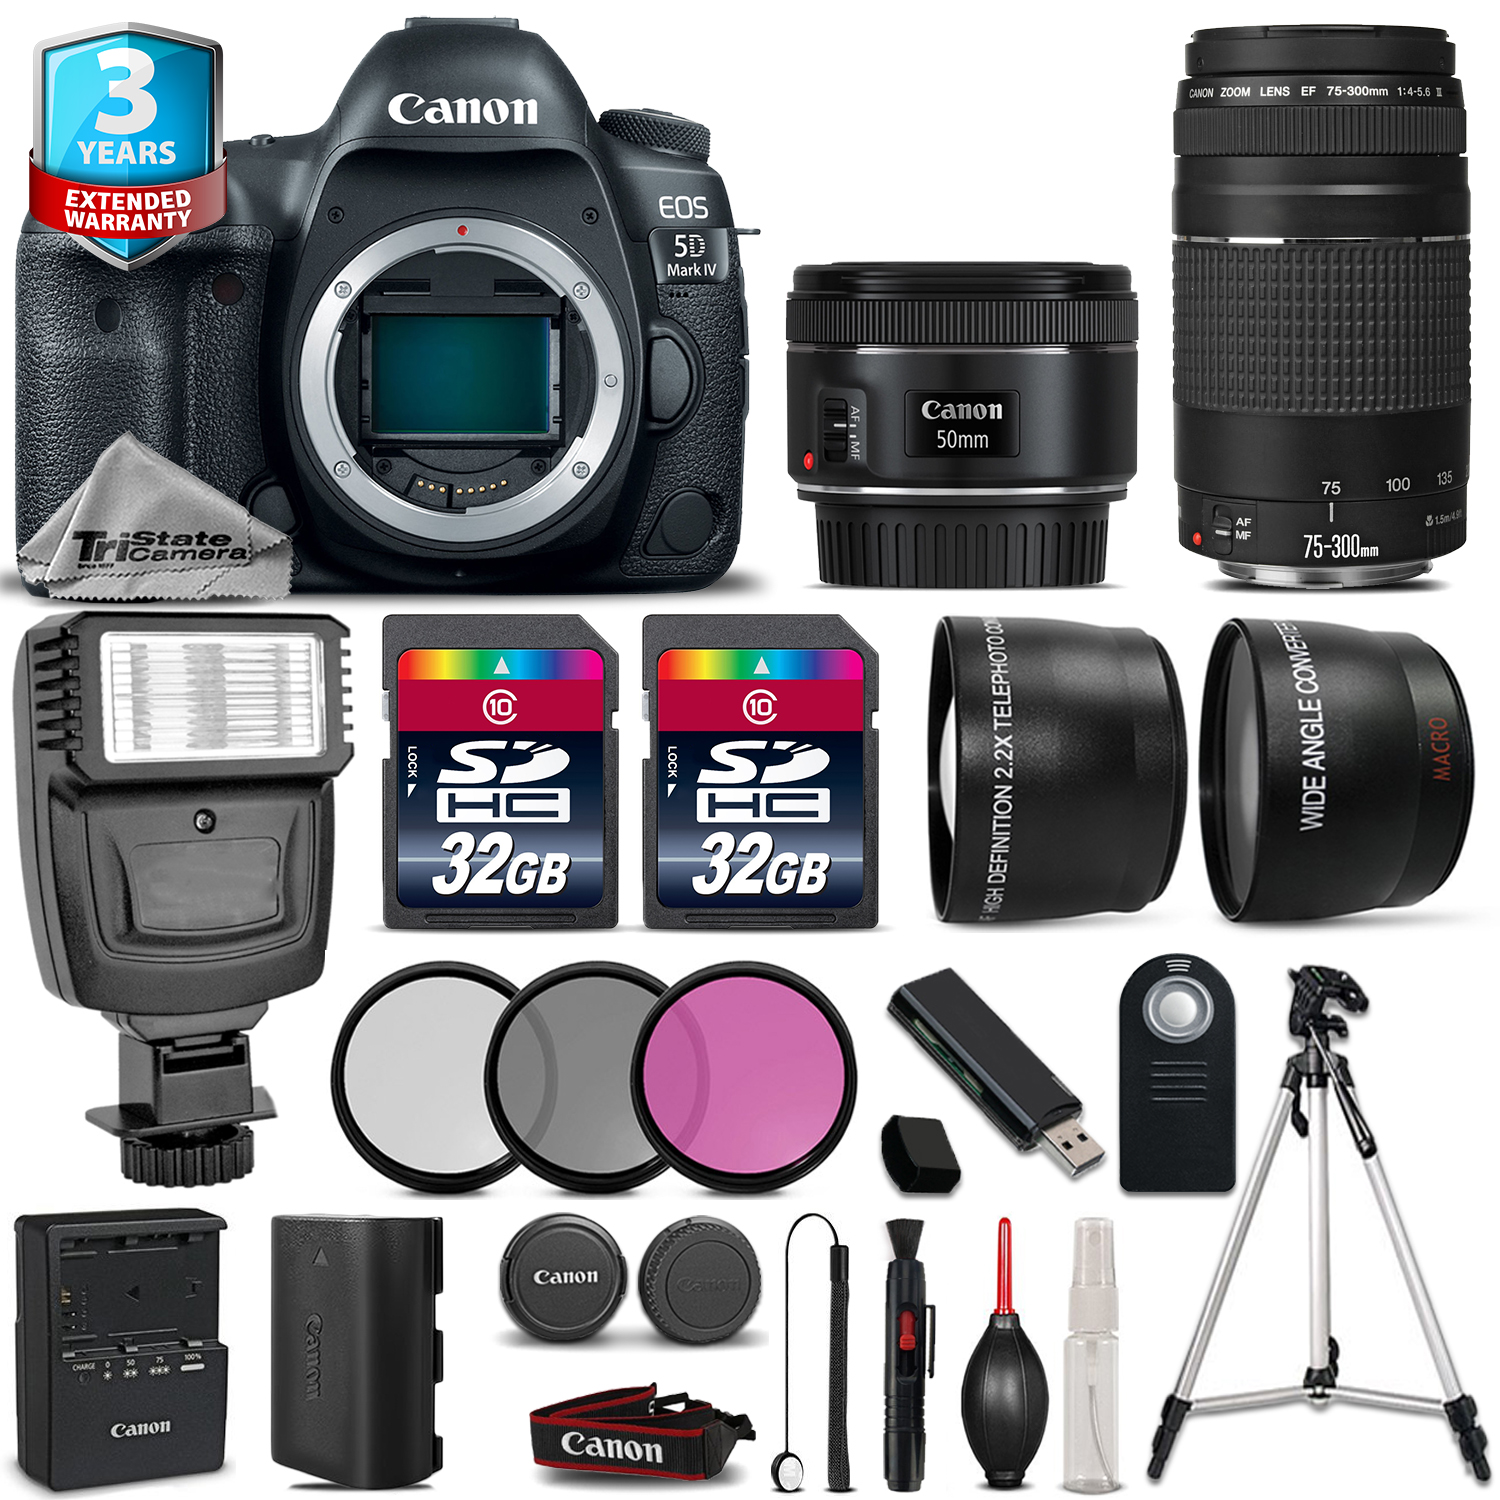 EOS 5D Mark IV Camera + 50mm STM + 75-300mm + 64GB + Flash + 2yr Warranty *FREE SHIPPING*